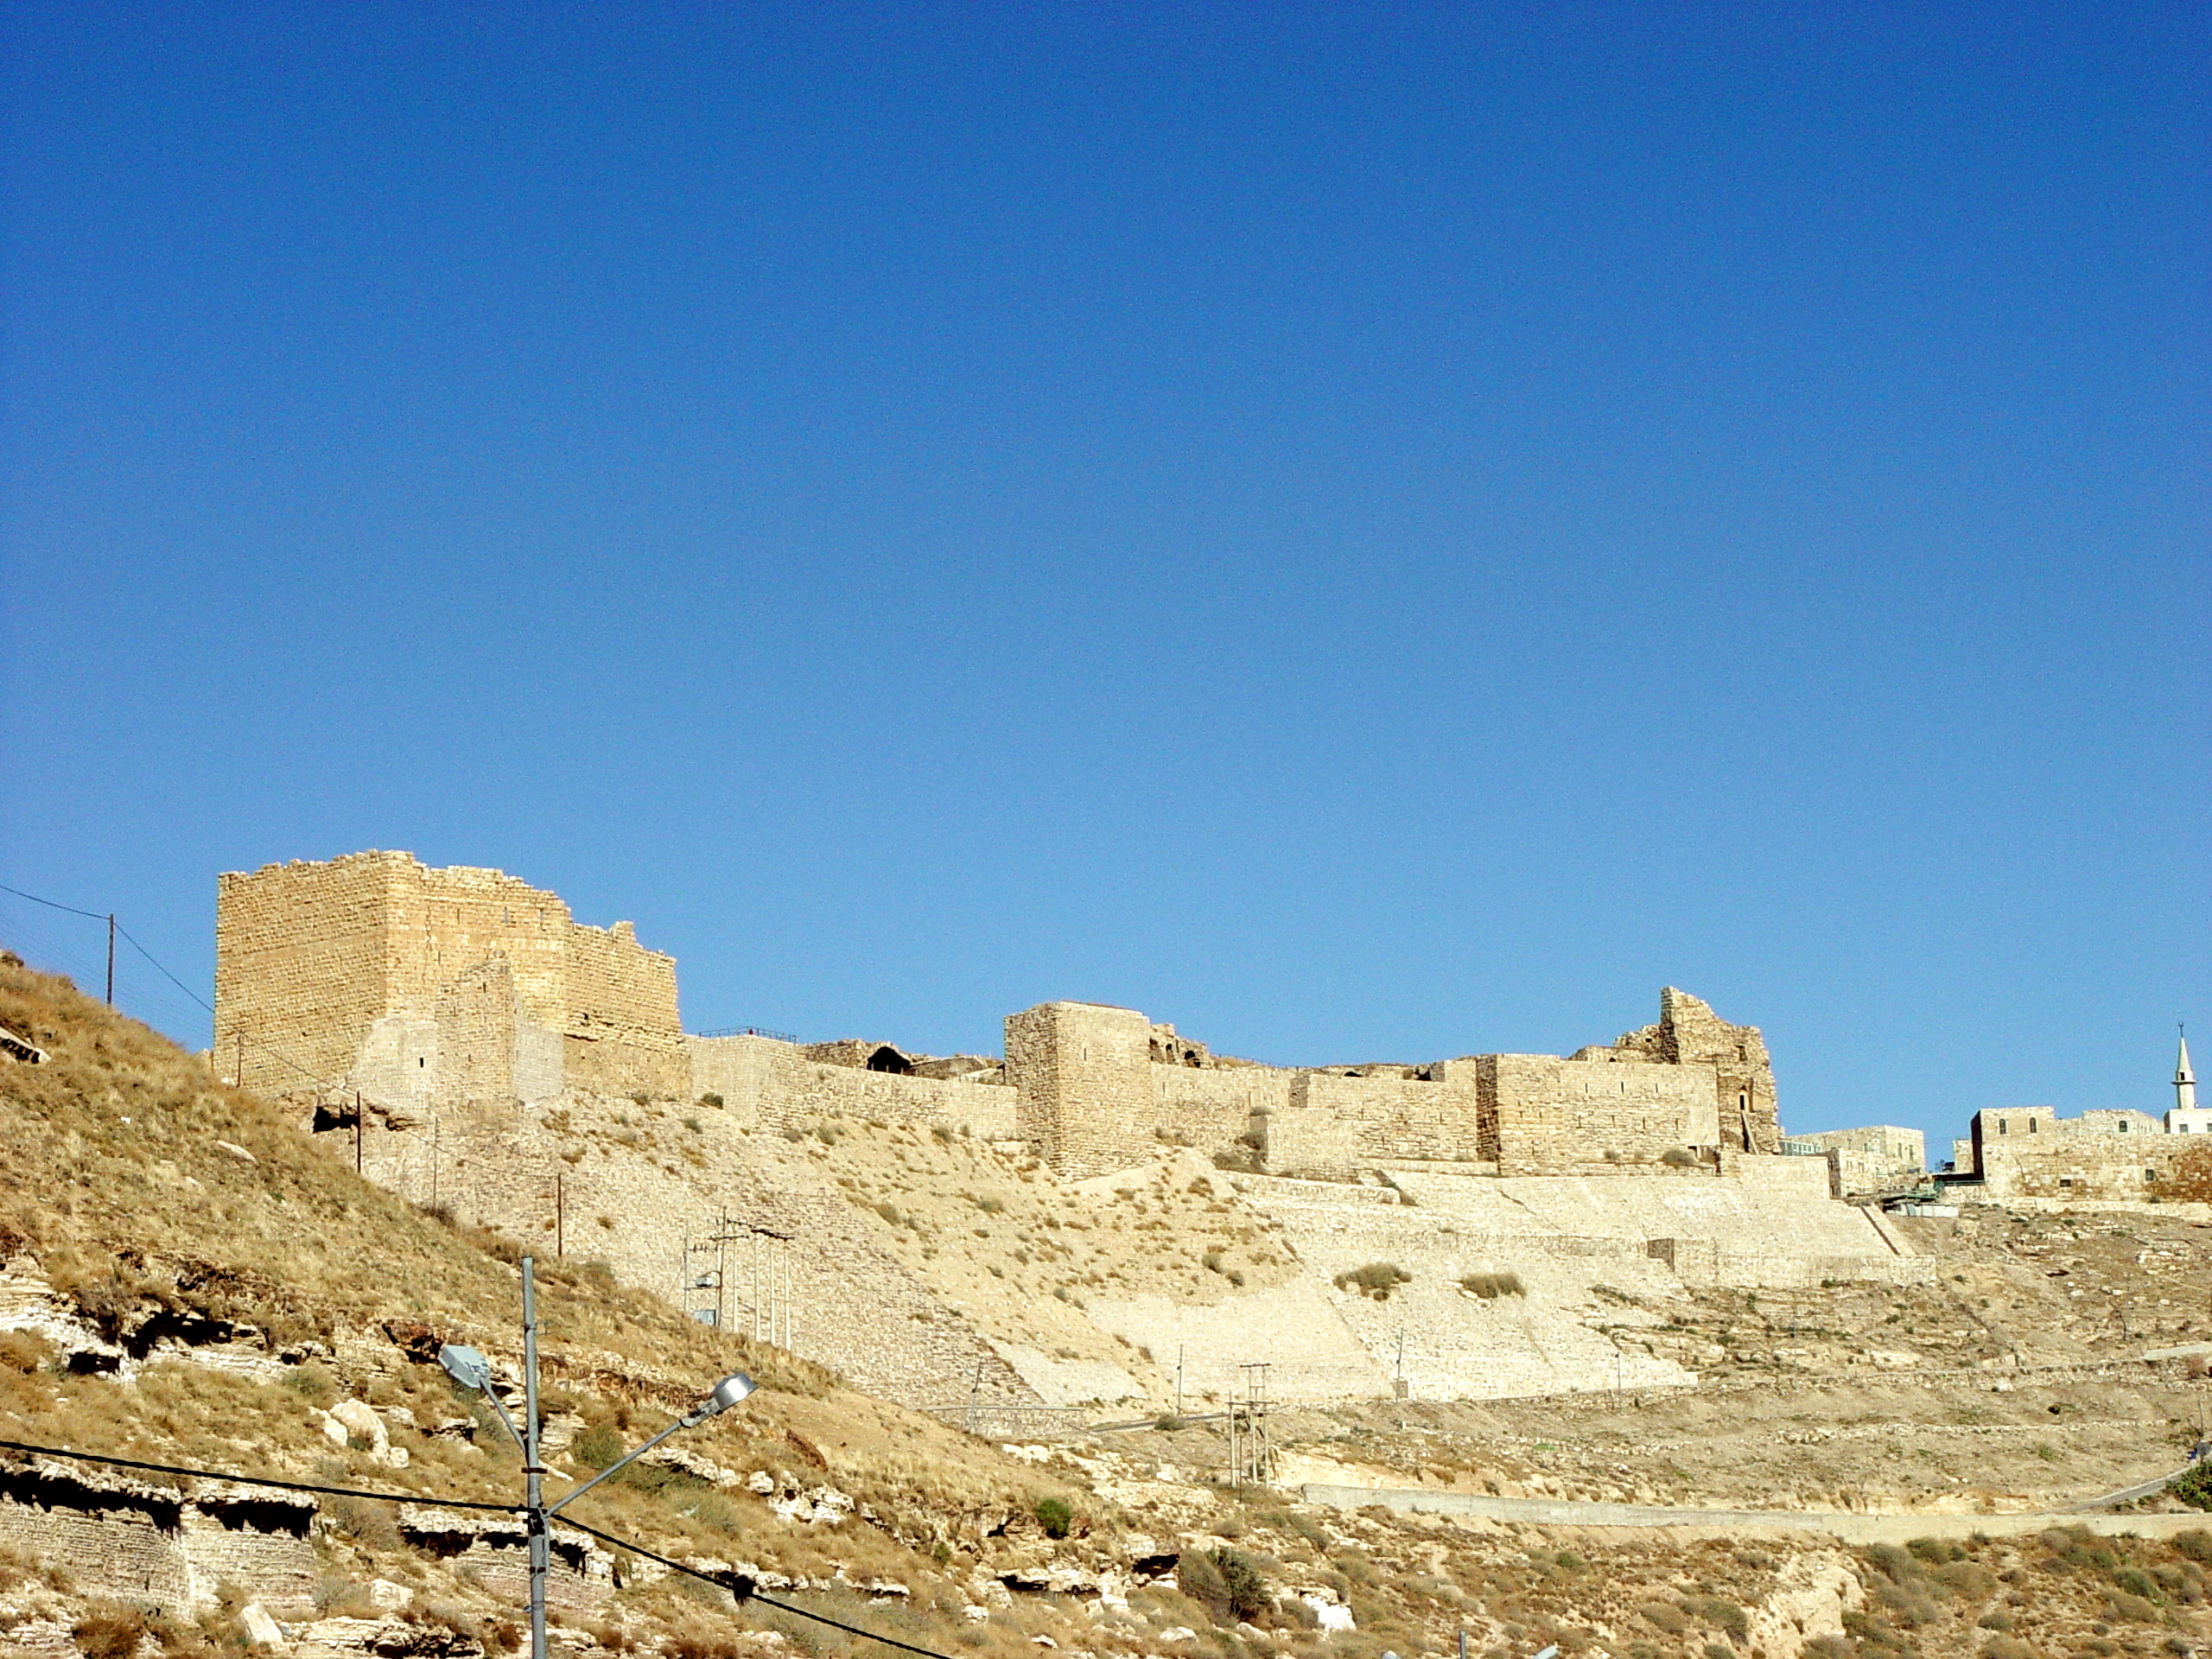 Karak Jordan  City pictures : Karak castle in Jordan Wikipedia, the free encyclopedia